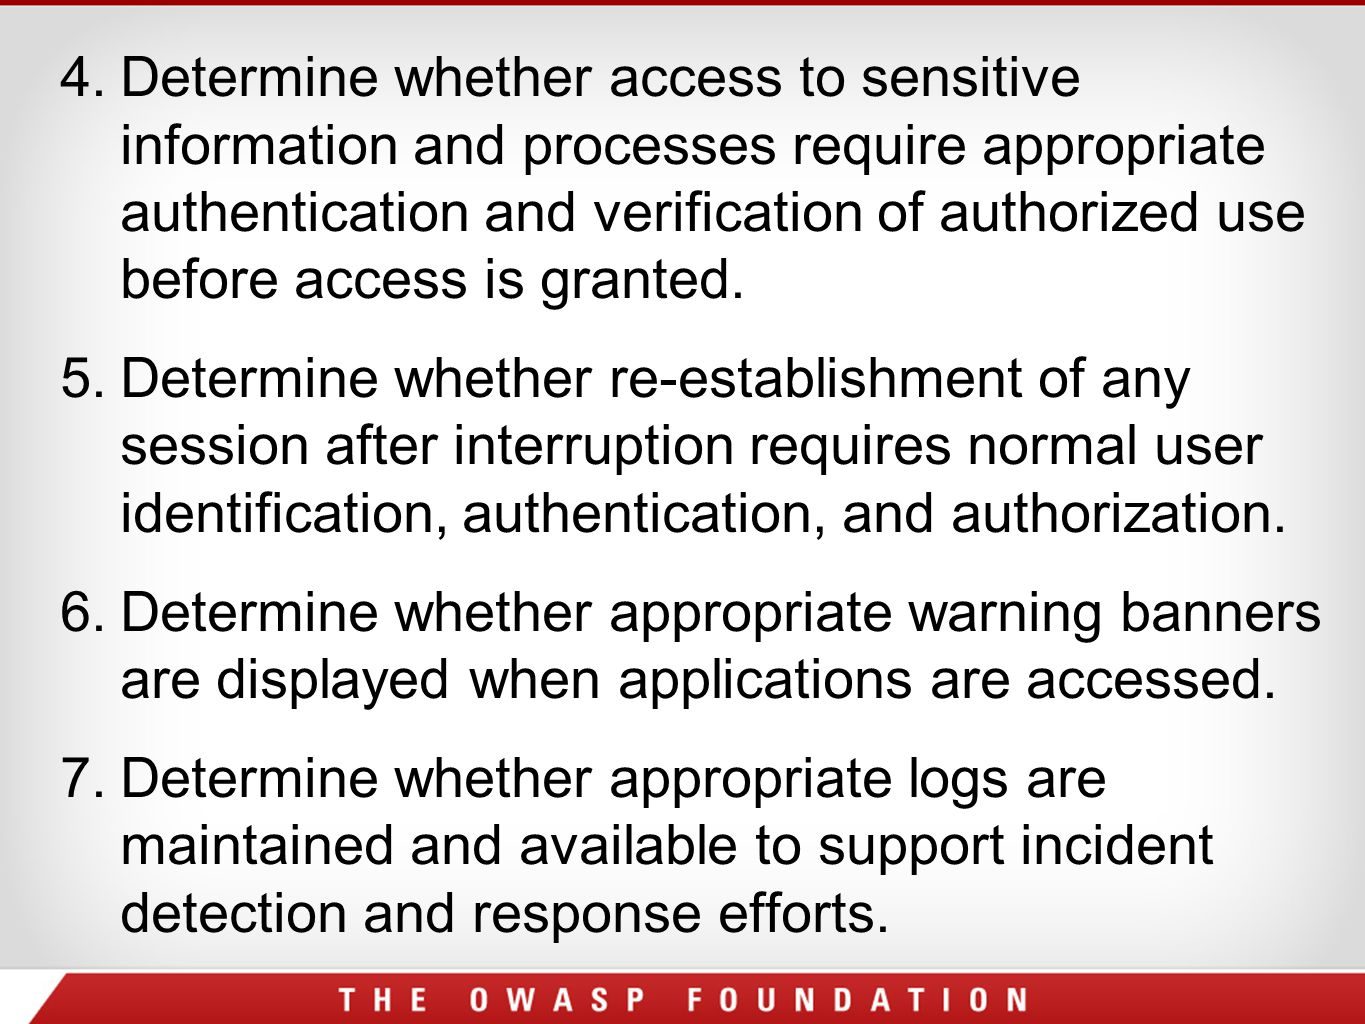 4. Determine whether access to sensitive information and processes require appropriate authentication and verification of authorized use before access is granted.